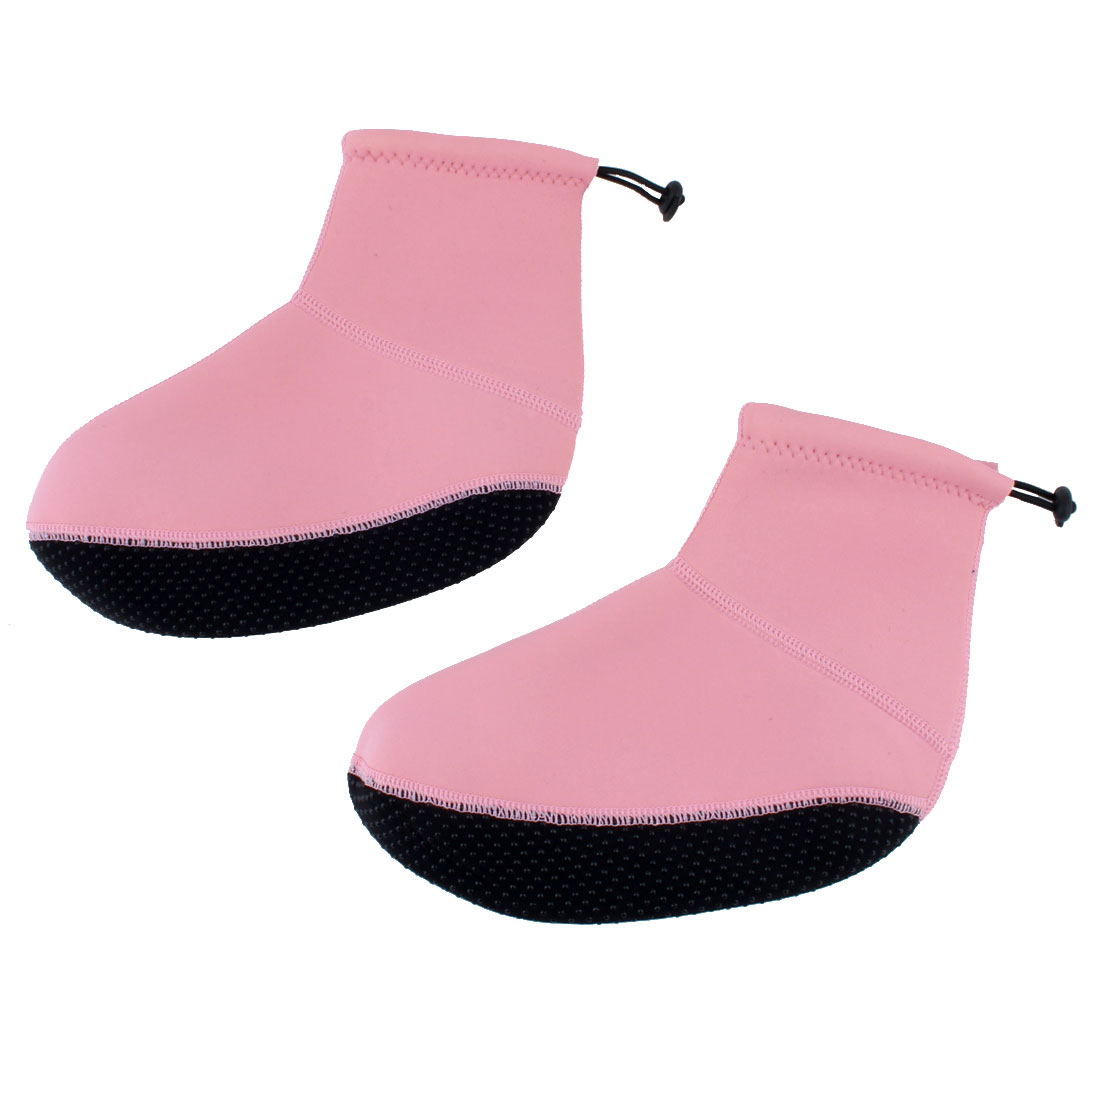 Water Sports Swim Surfing Neoprene Diving Socks Sand Volleyball Swimming Shoes Booties Pink XS